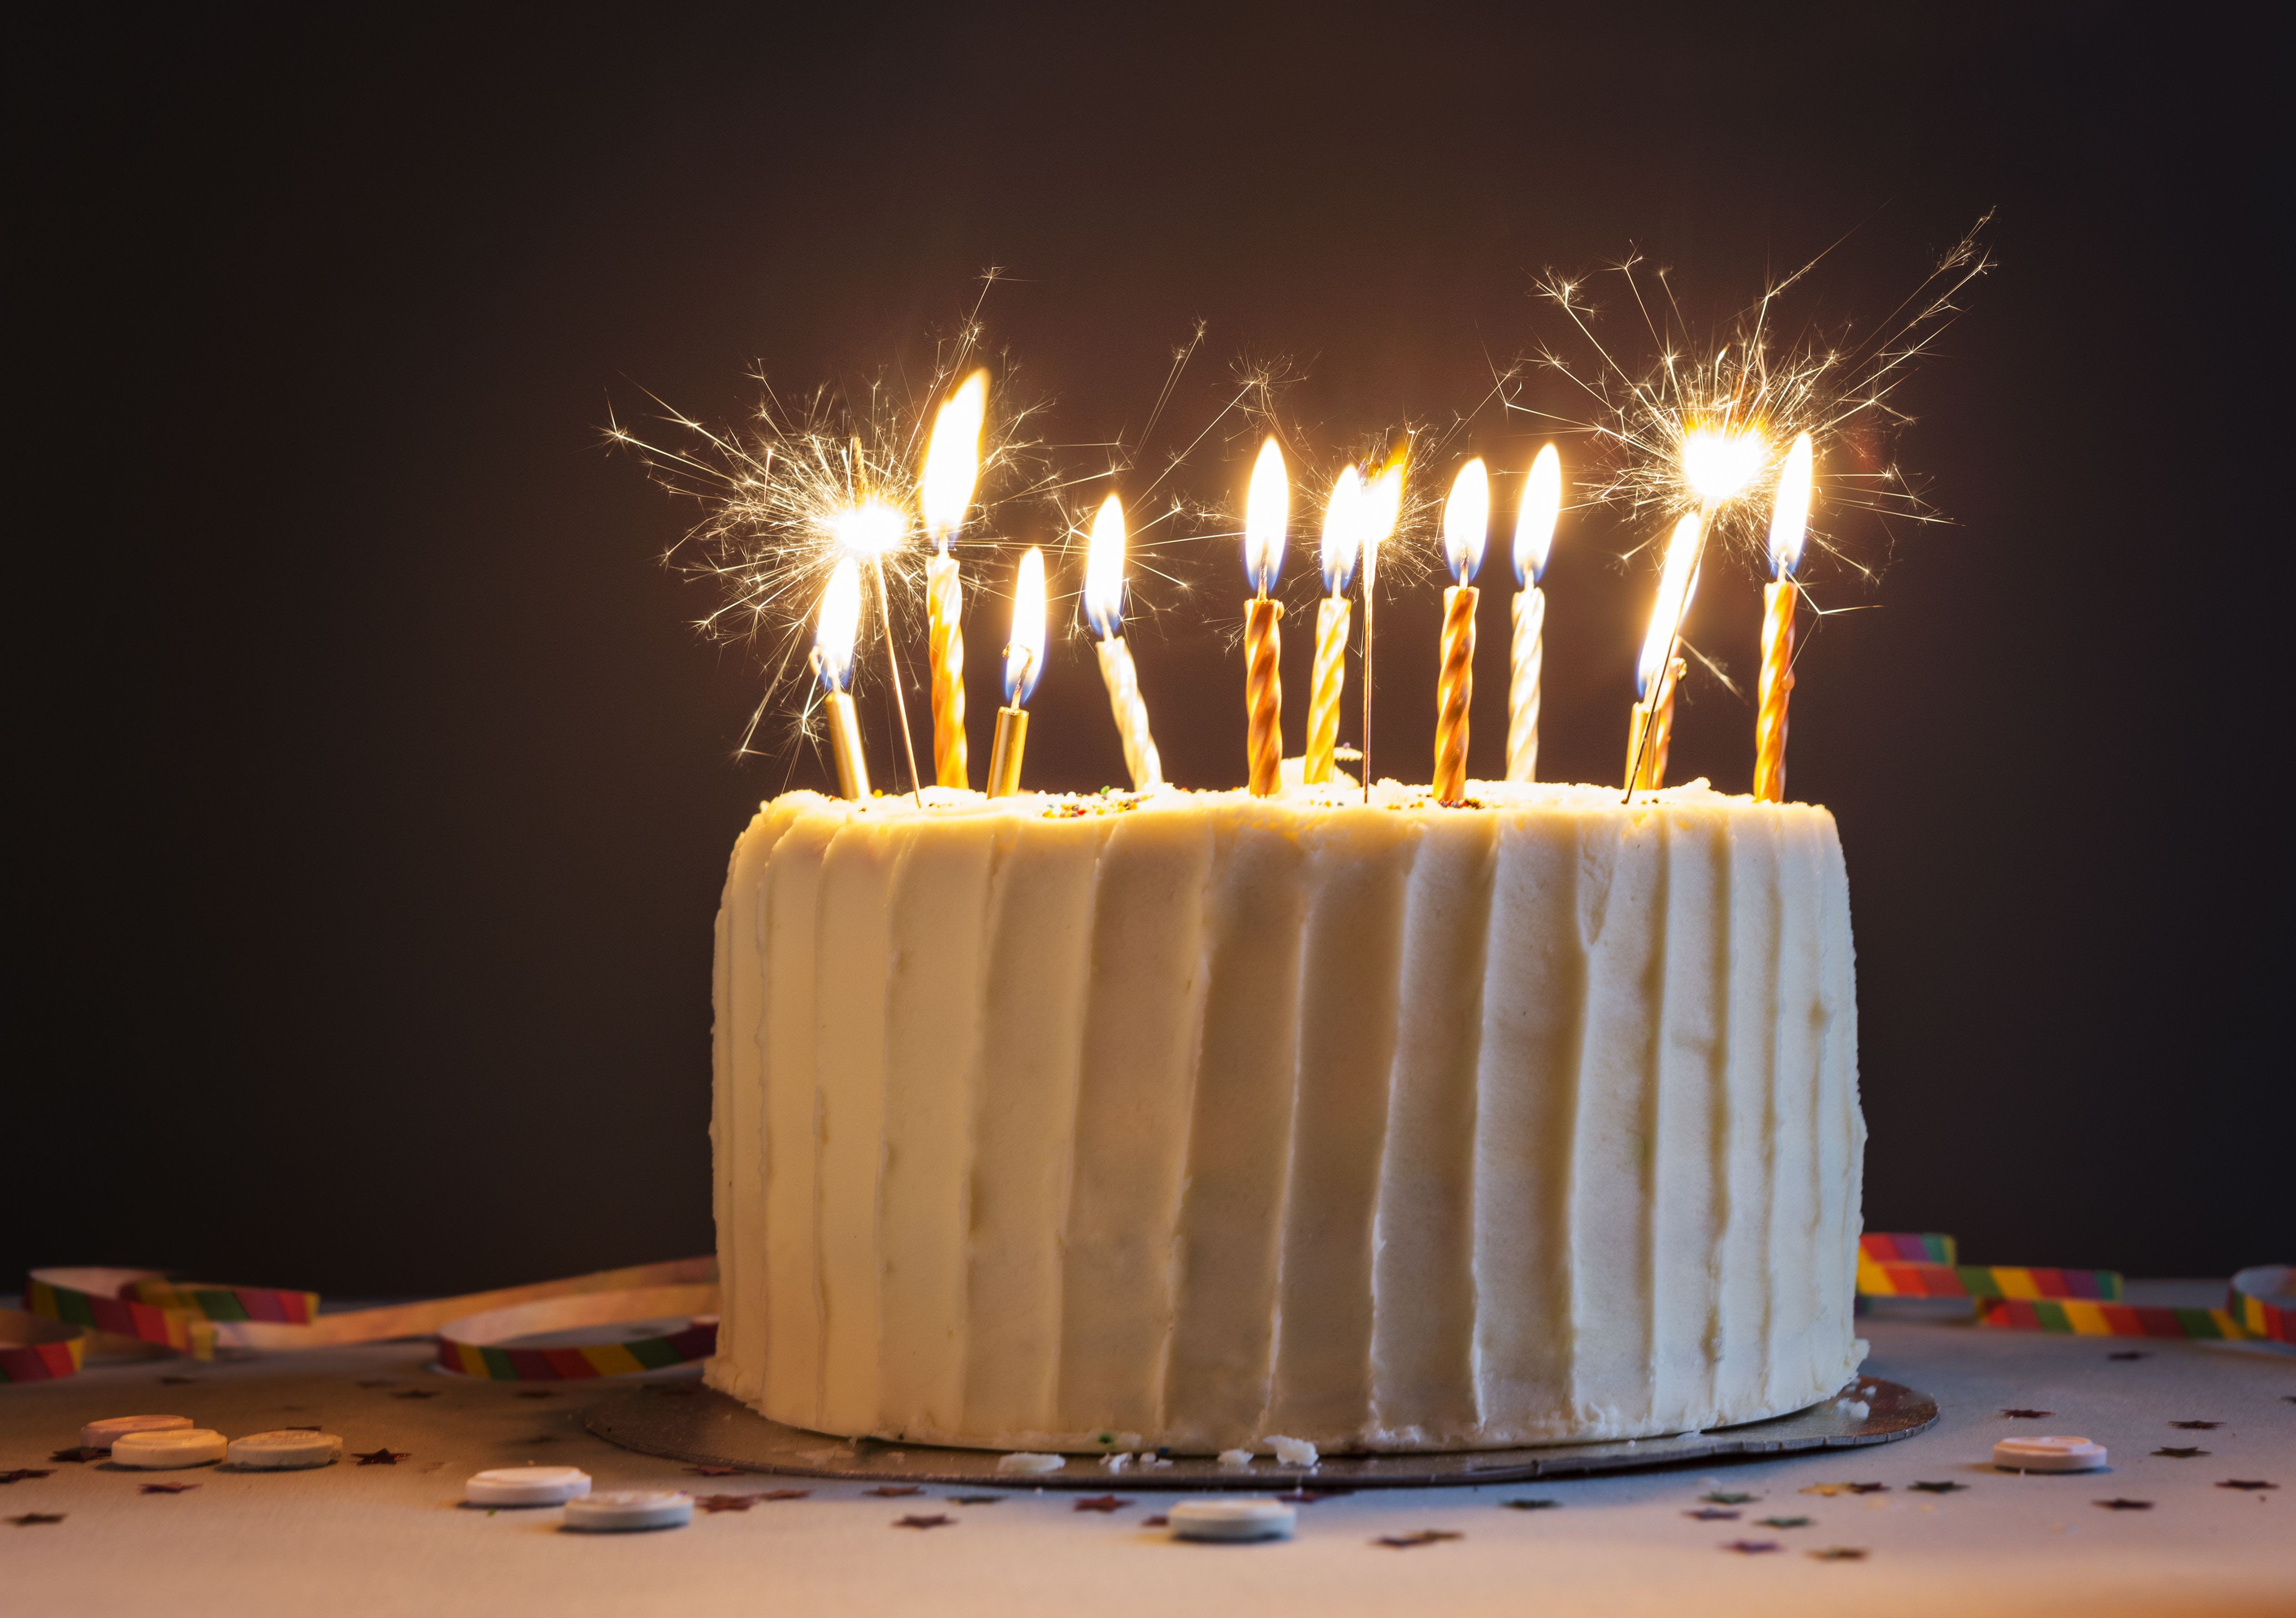 Best ideas about Birthday Cake Candles . Save or Pin A Selection of Special Birthday Wishes Now.